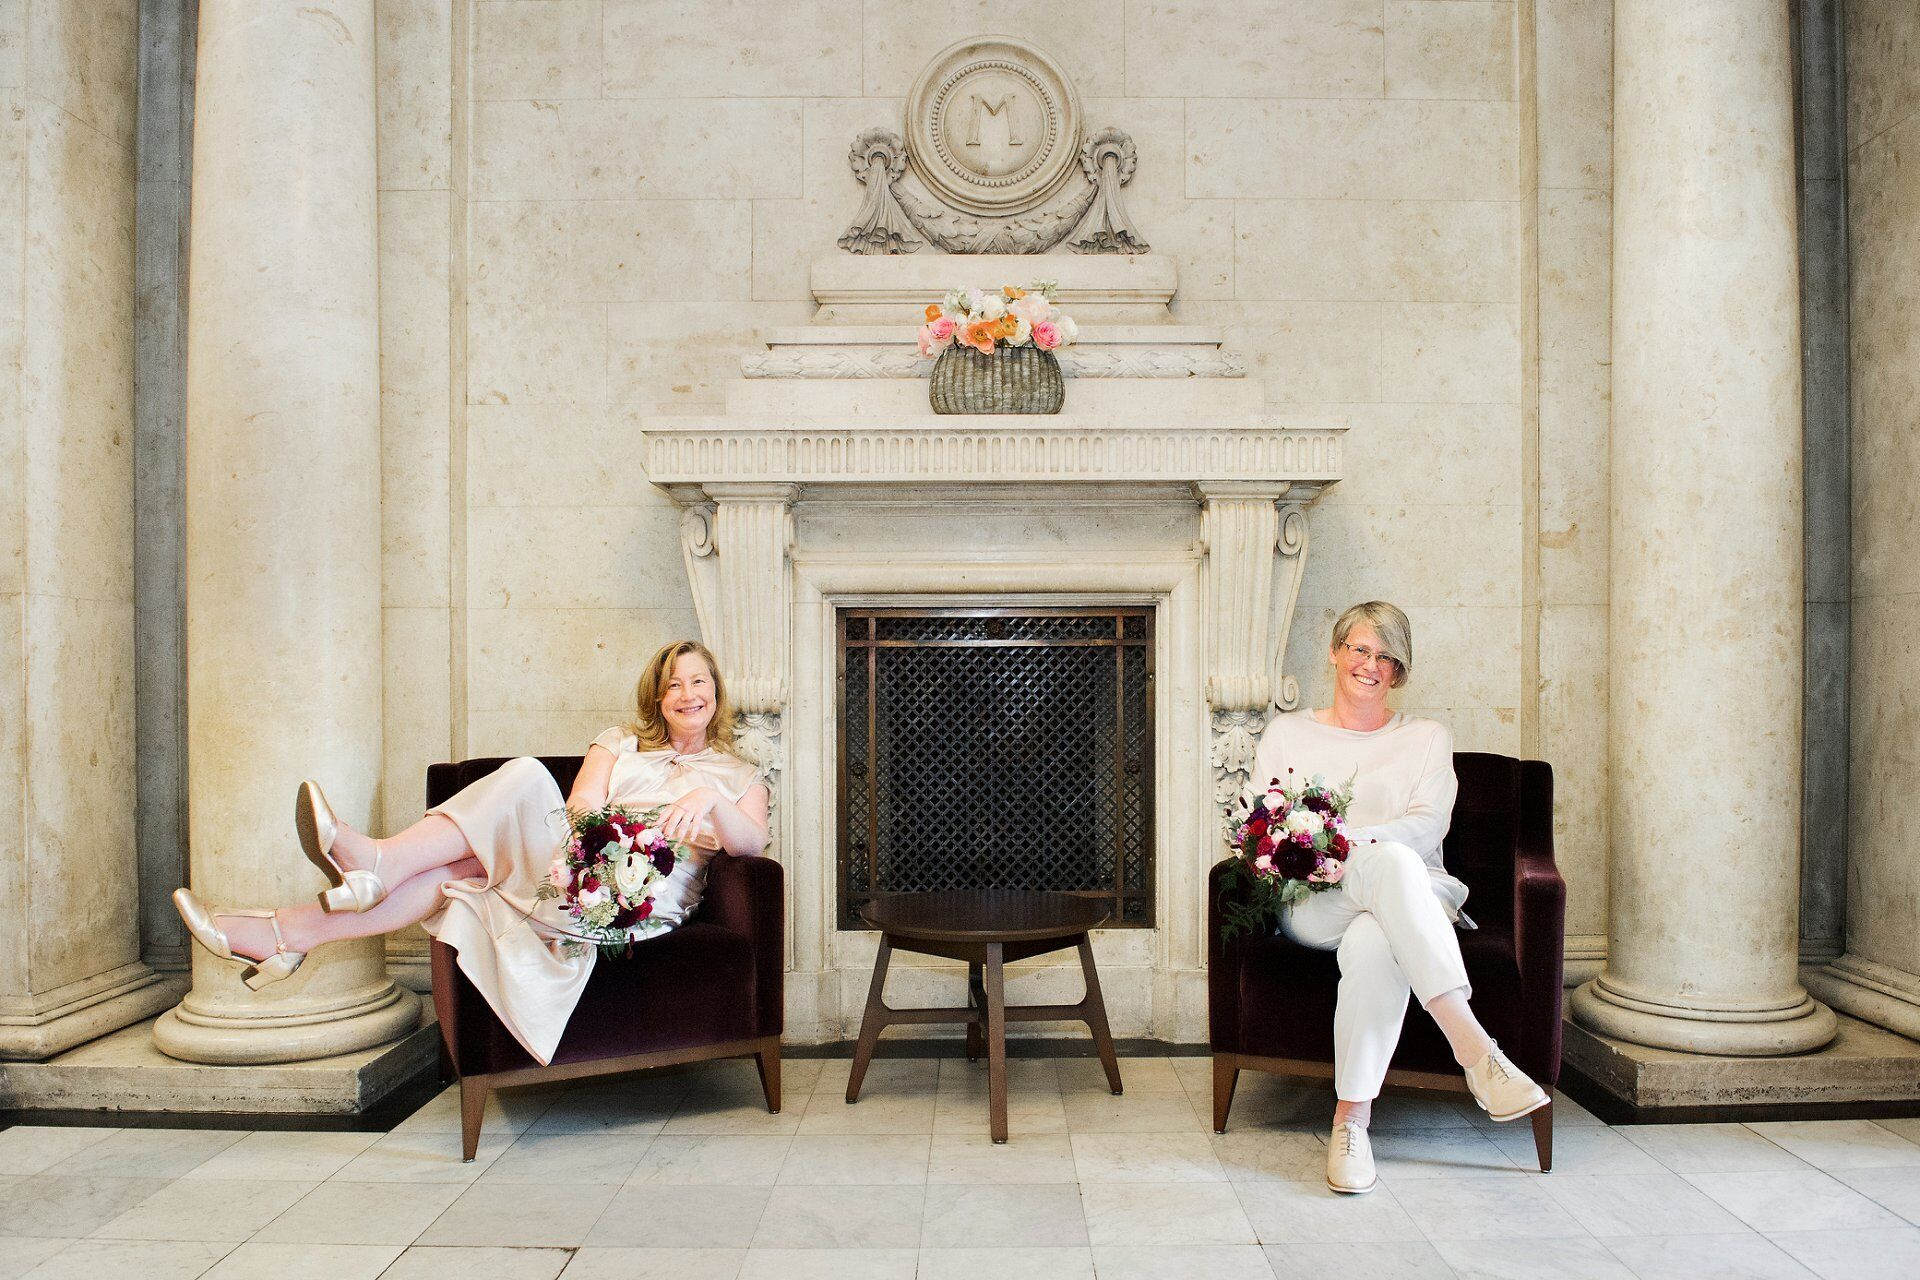 two brides in the lobby at old marylebone town hall sitting on aubergine velvet archairs holding flowers from titainias garden